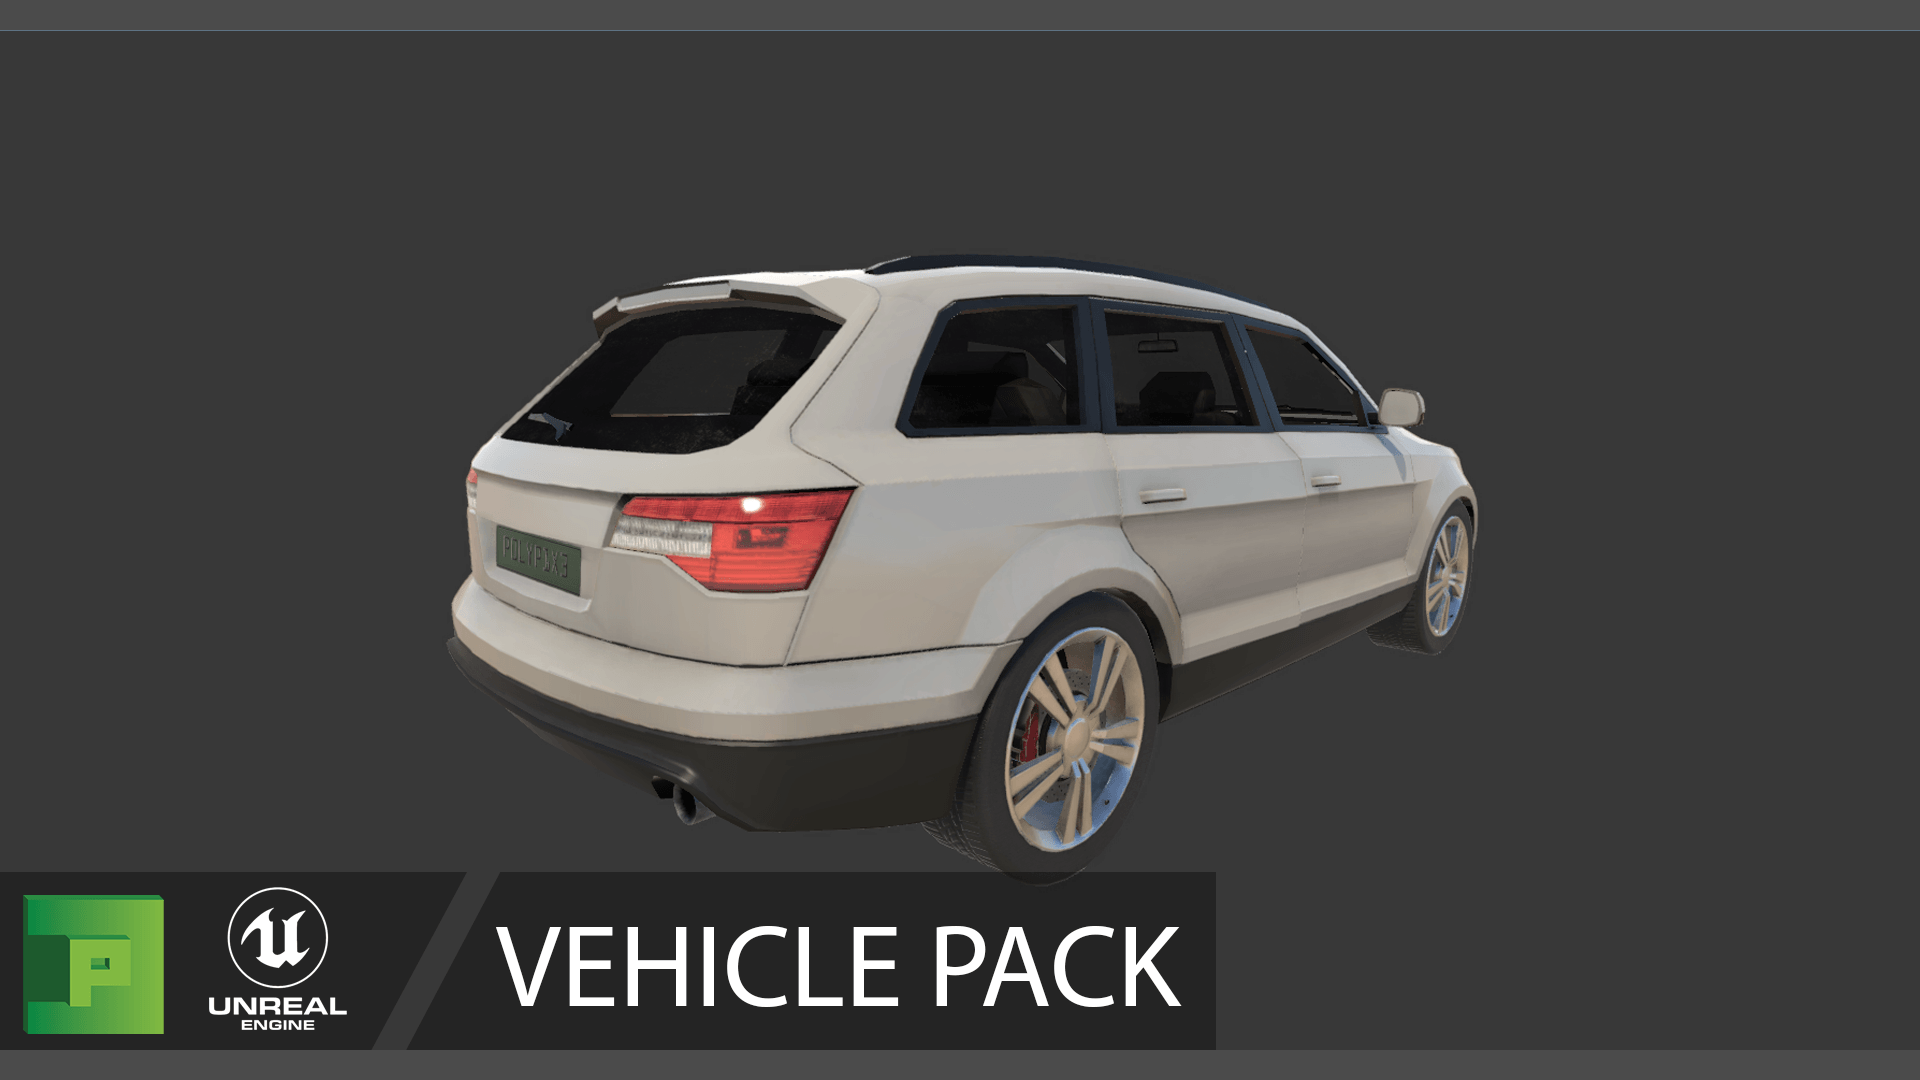 Vehicle Pack Vol 1 by PolyPixel in Props - UE4 Marketplace